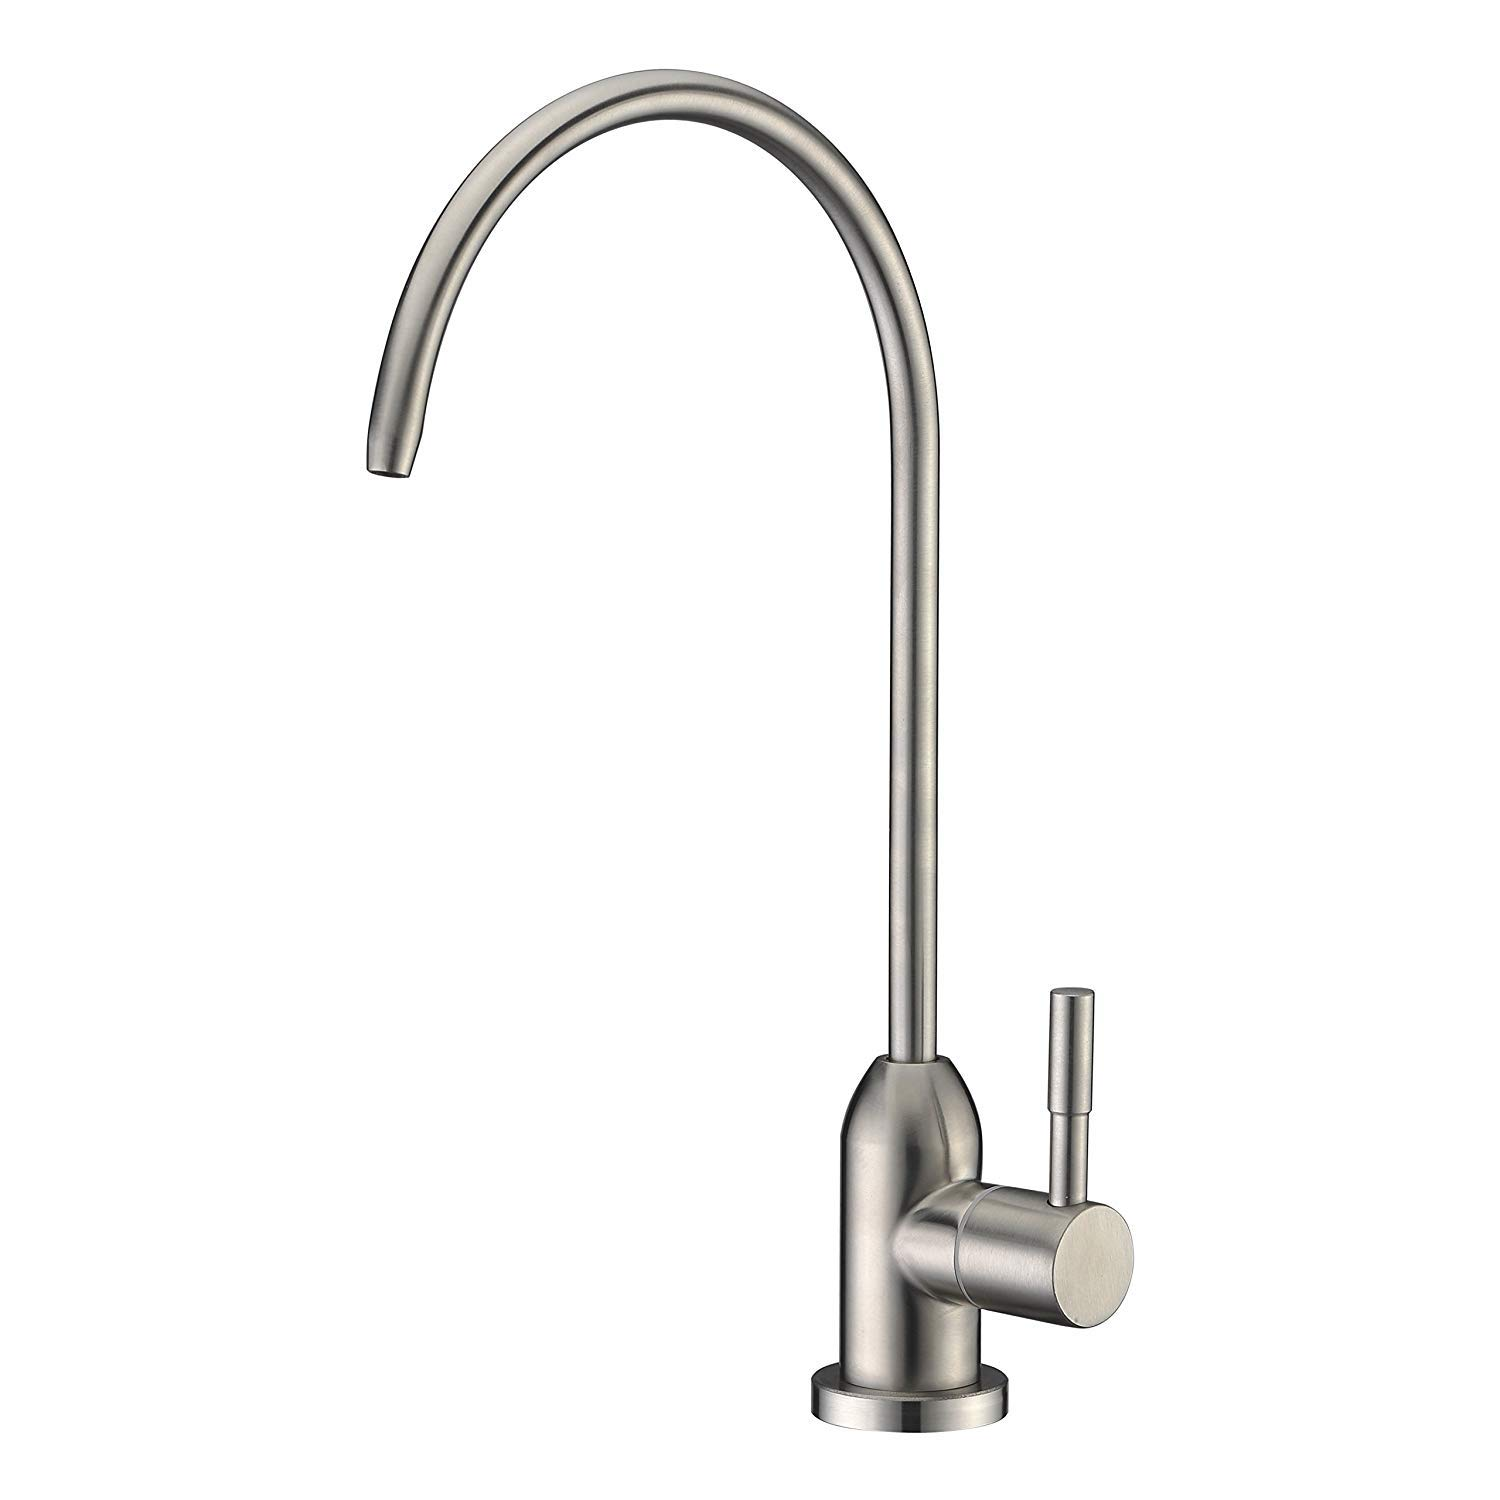 Avola Modern Best Stainless Steel Brushed Nickel Kitchen Bar Sink Drinking Water Purifier Faucet, Commercial Water Filtration Faucet